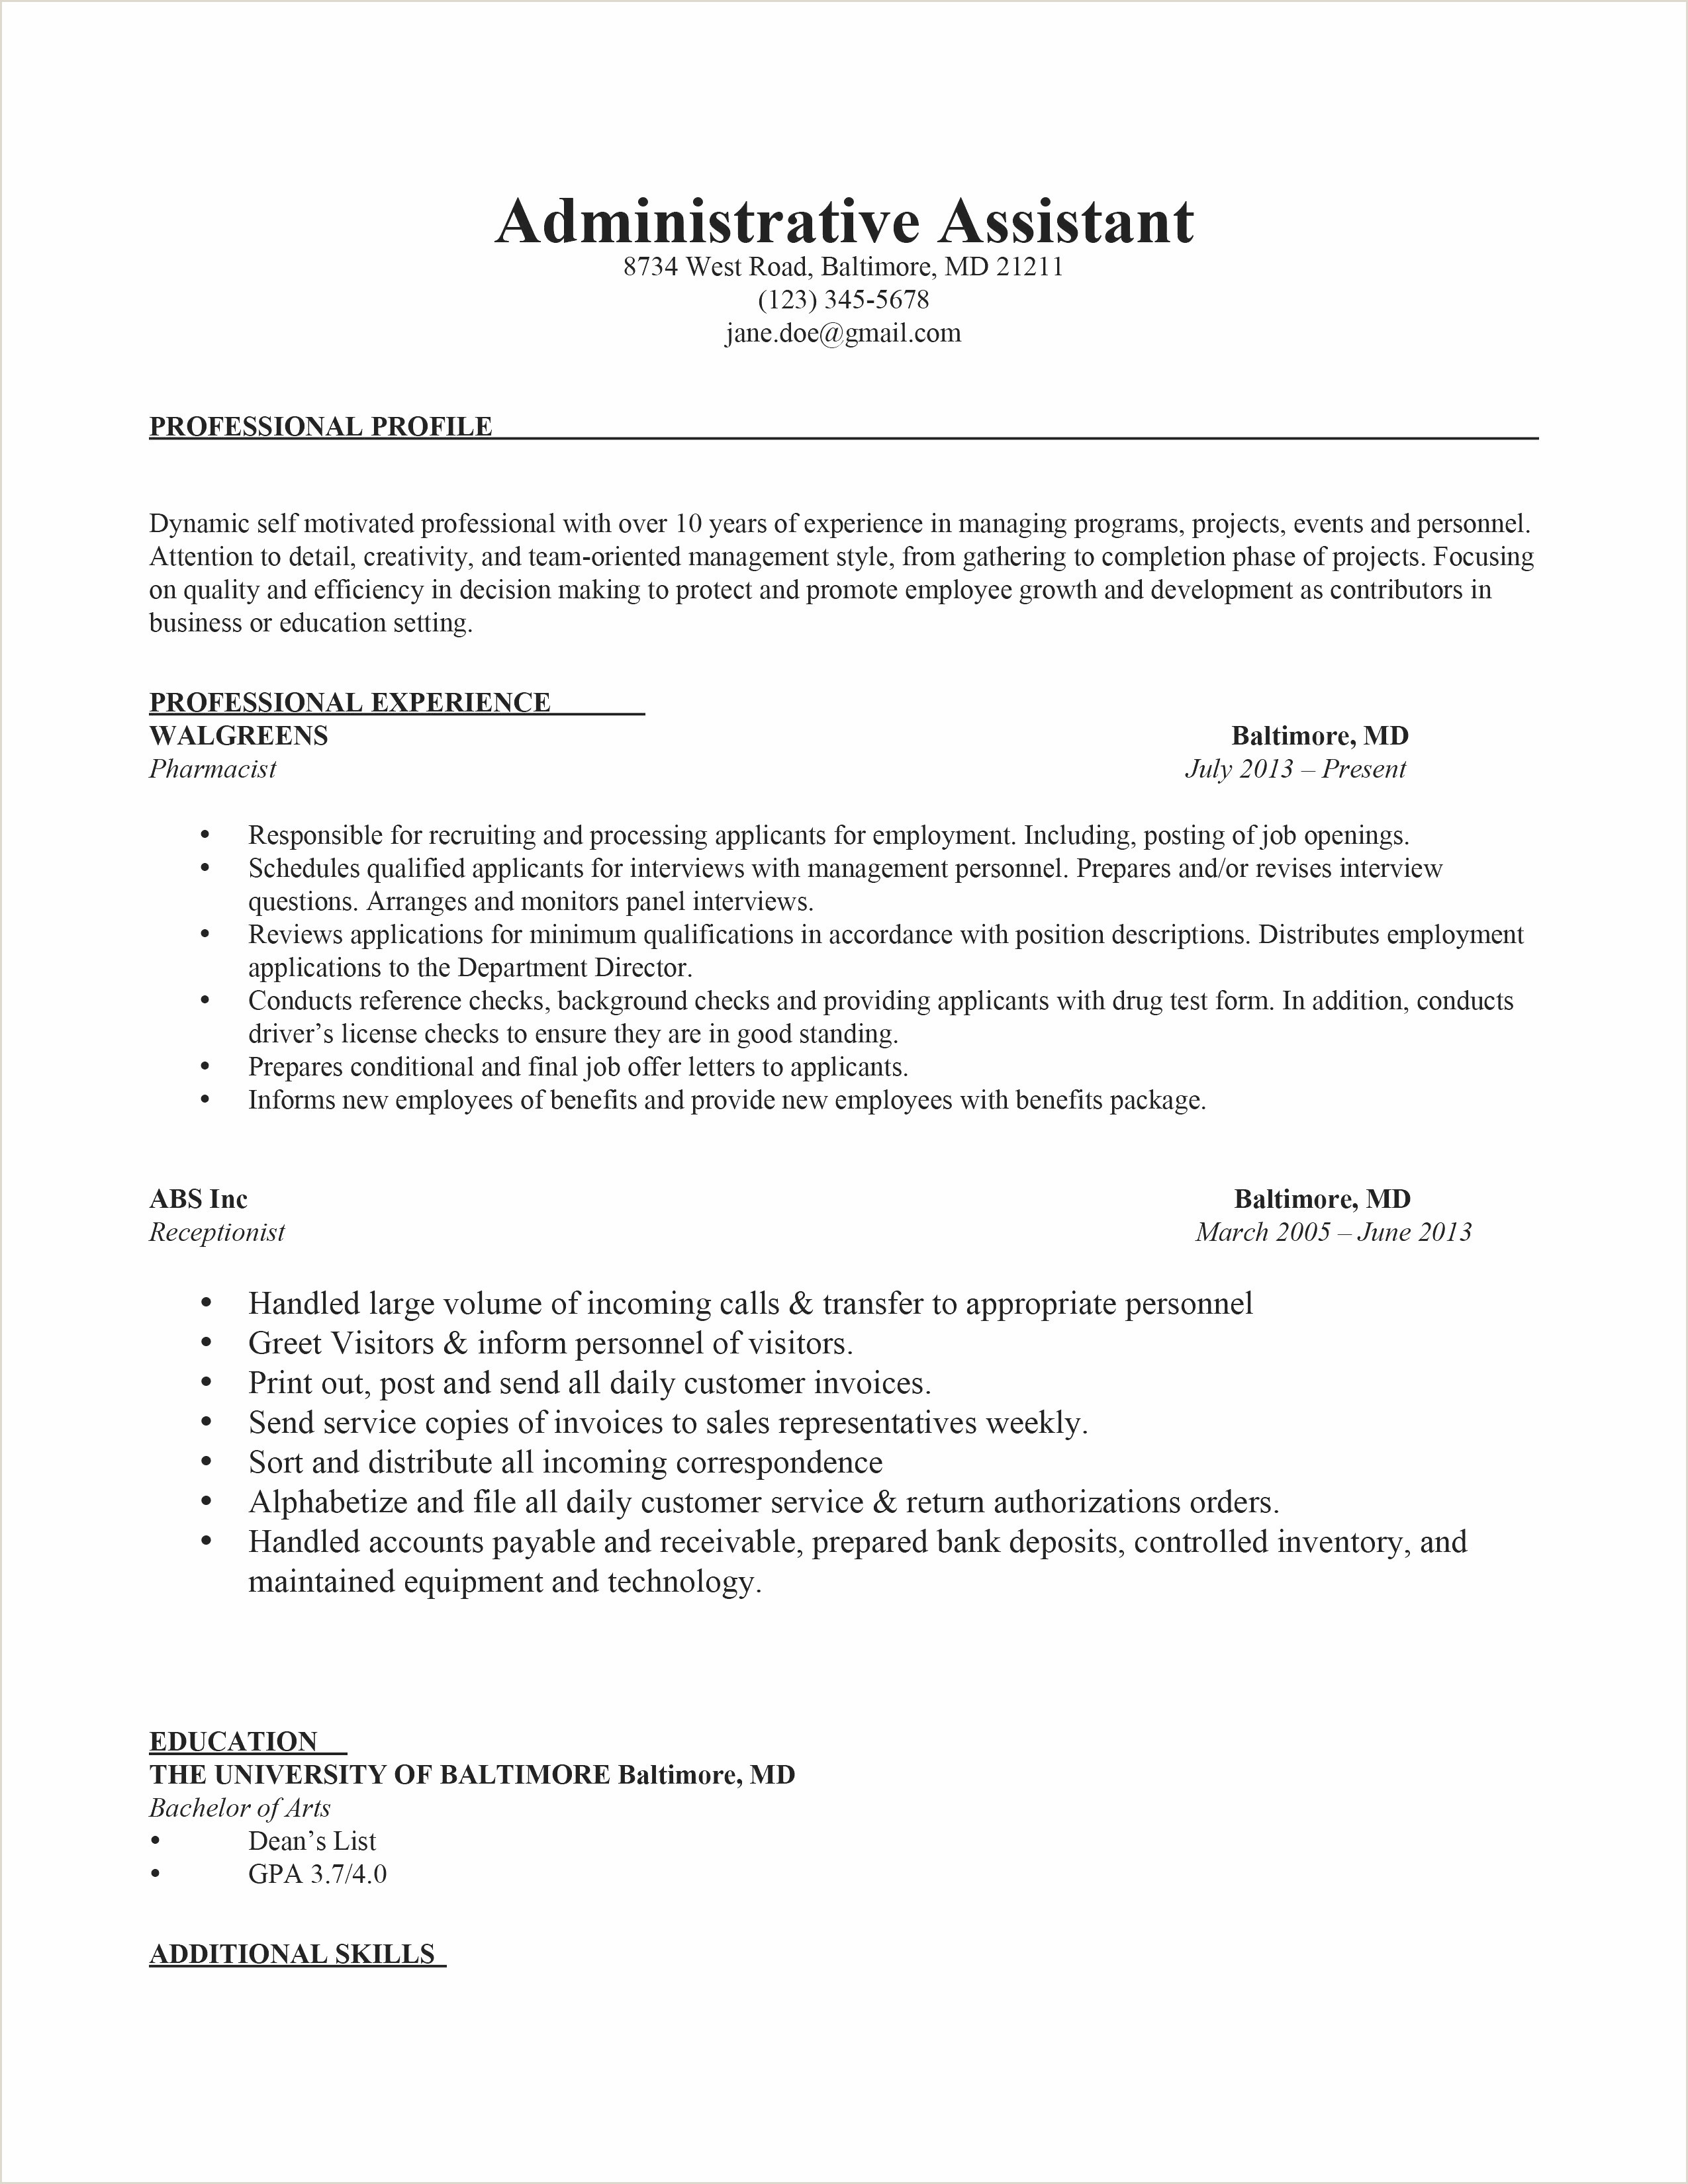 Teaching assistant Cover Letter Samples Cover Letter Samples for Resume